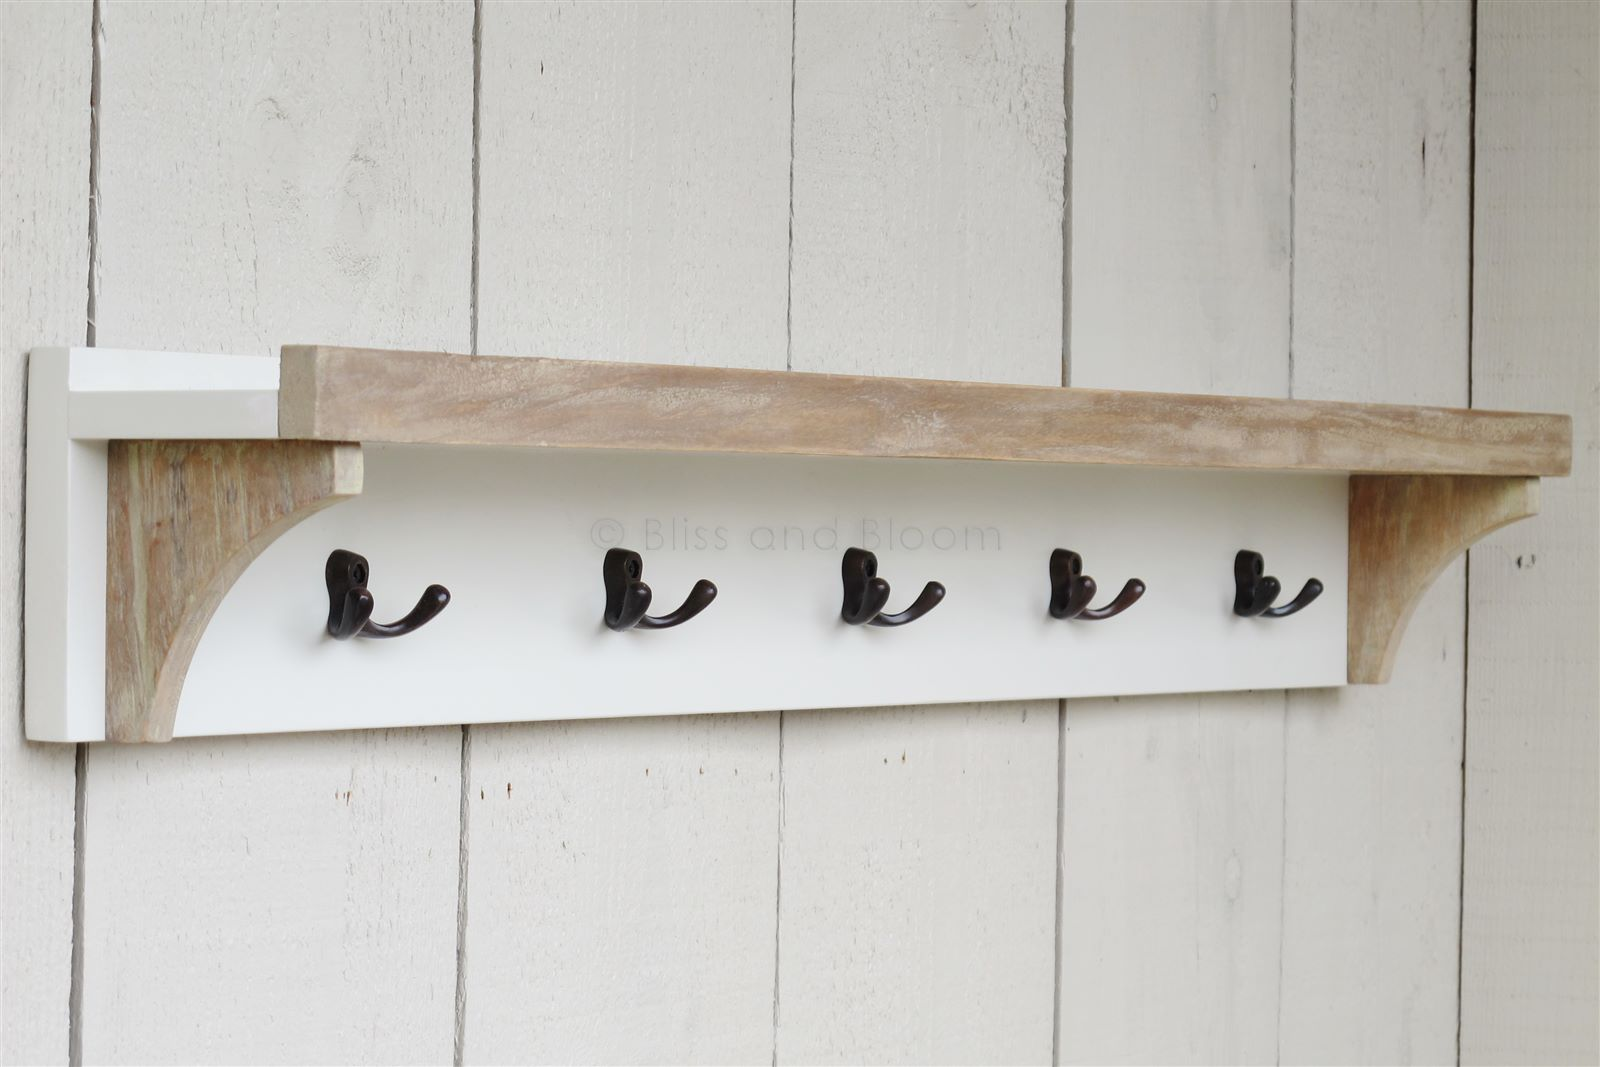 Coat Rack With Shelf 5 Hooks Bliss And Bloom Ltd